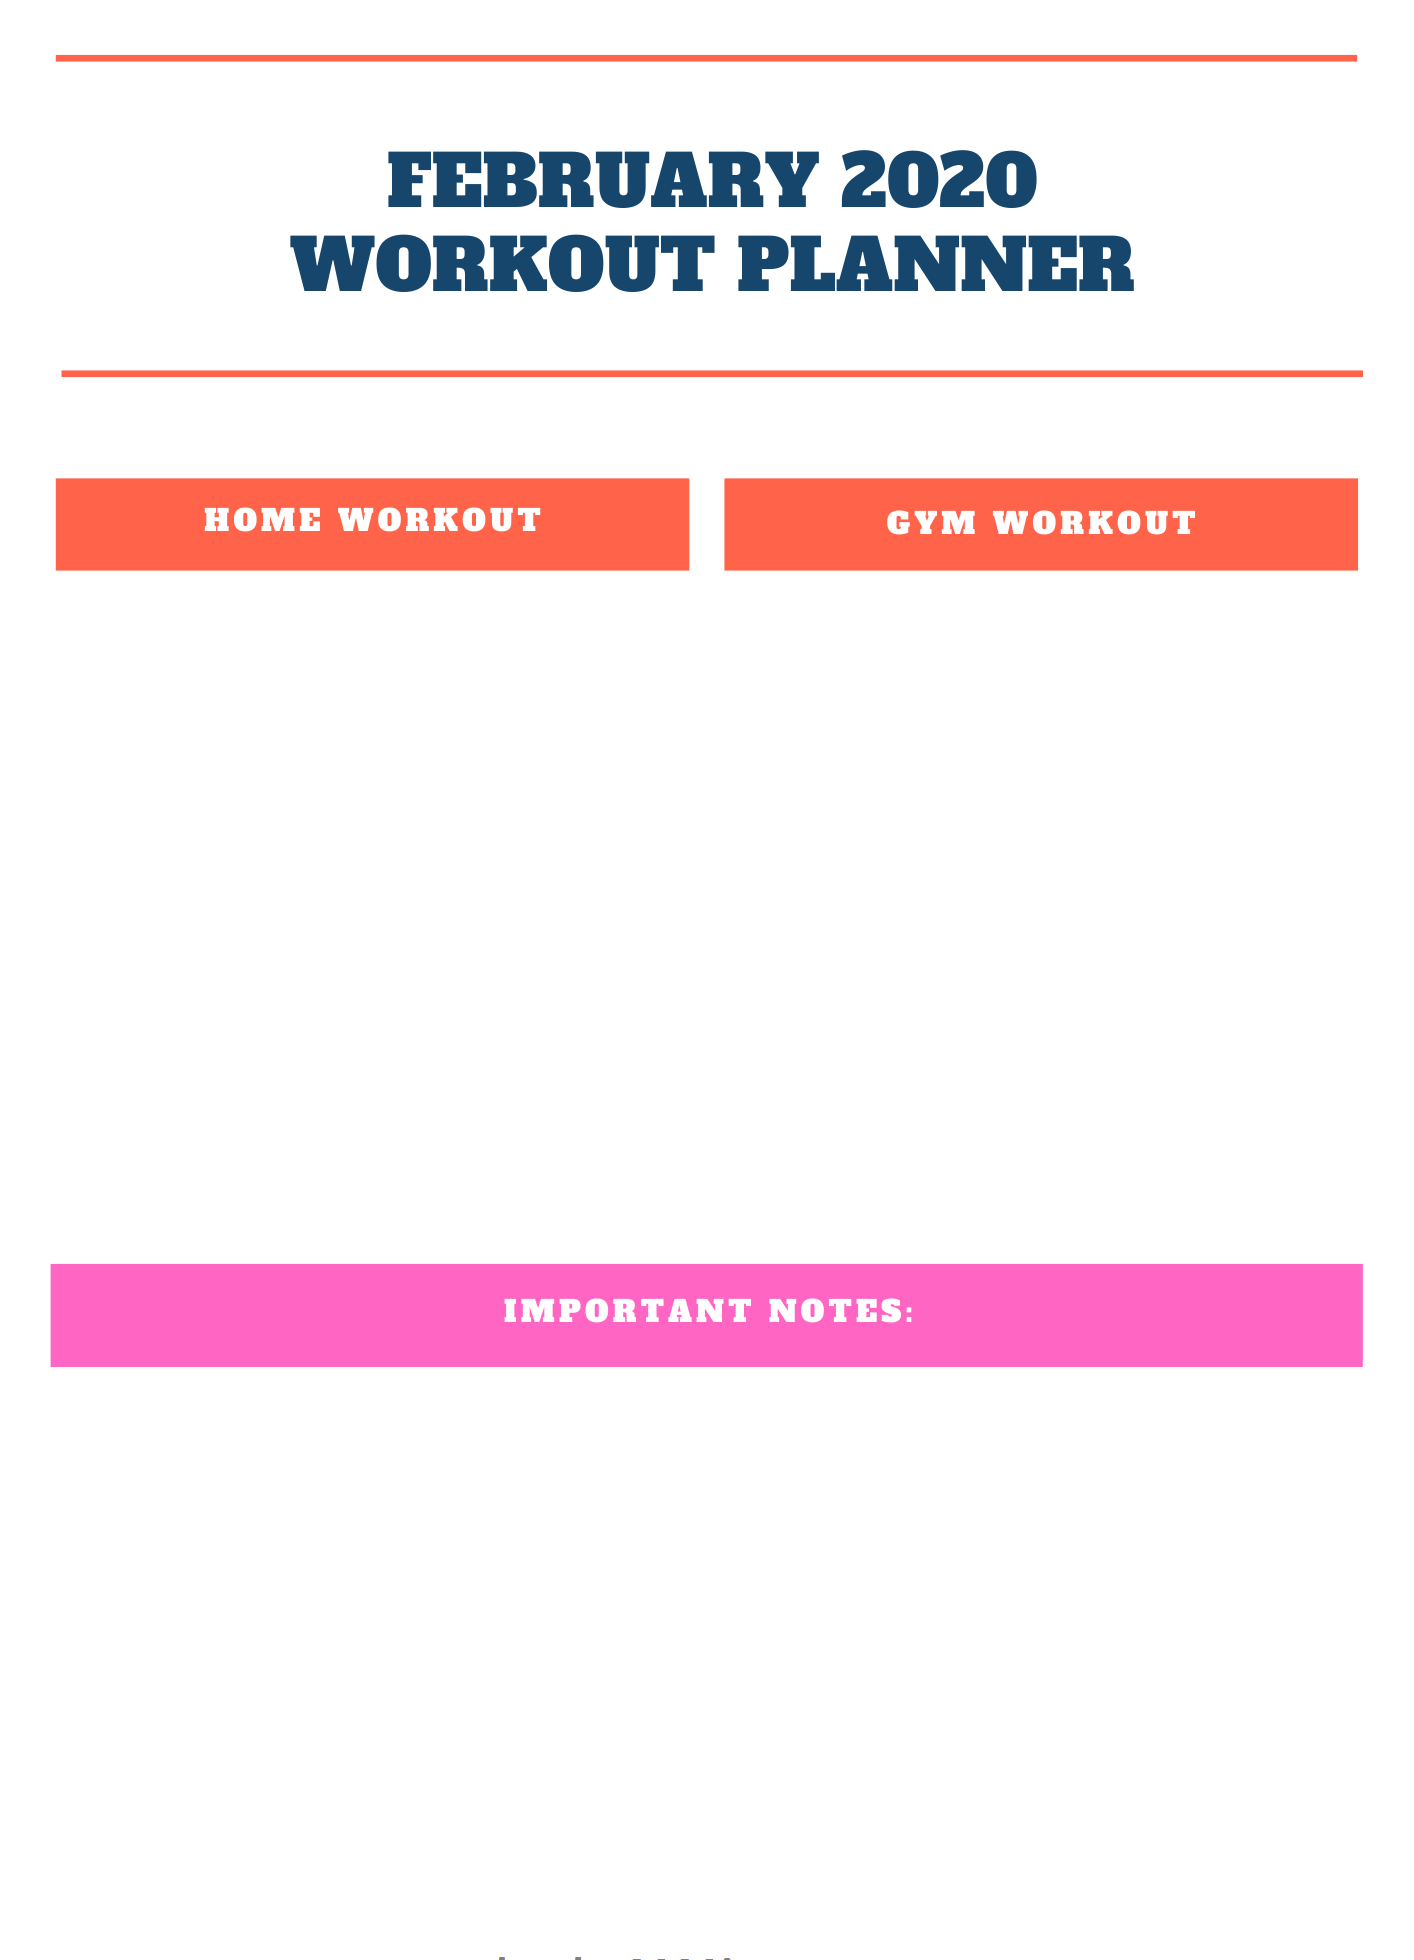 February 2020 Workout Planner